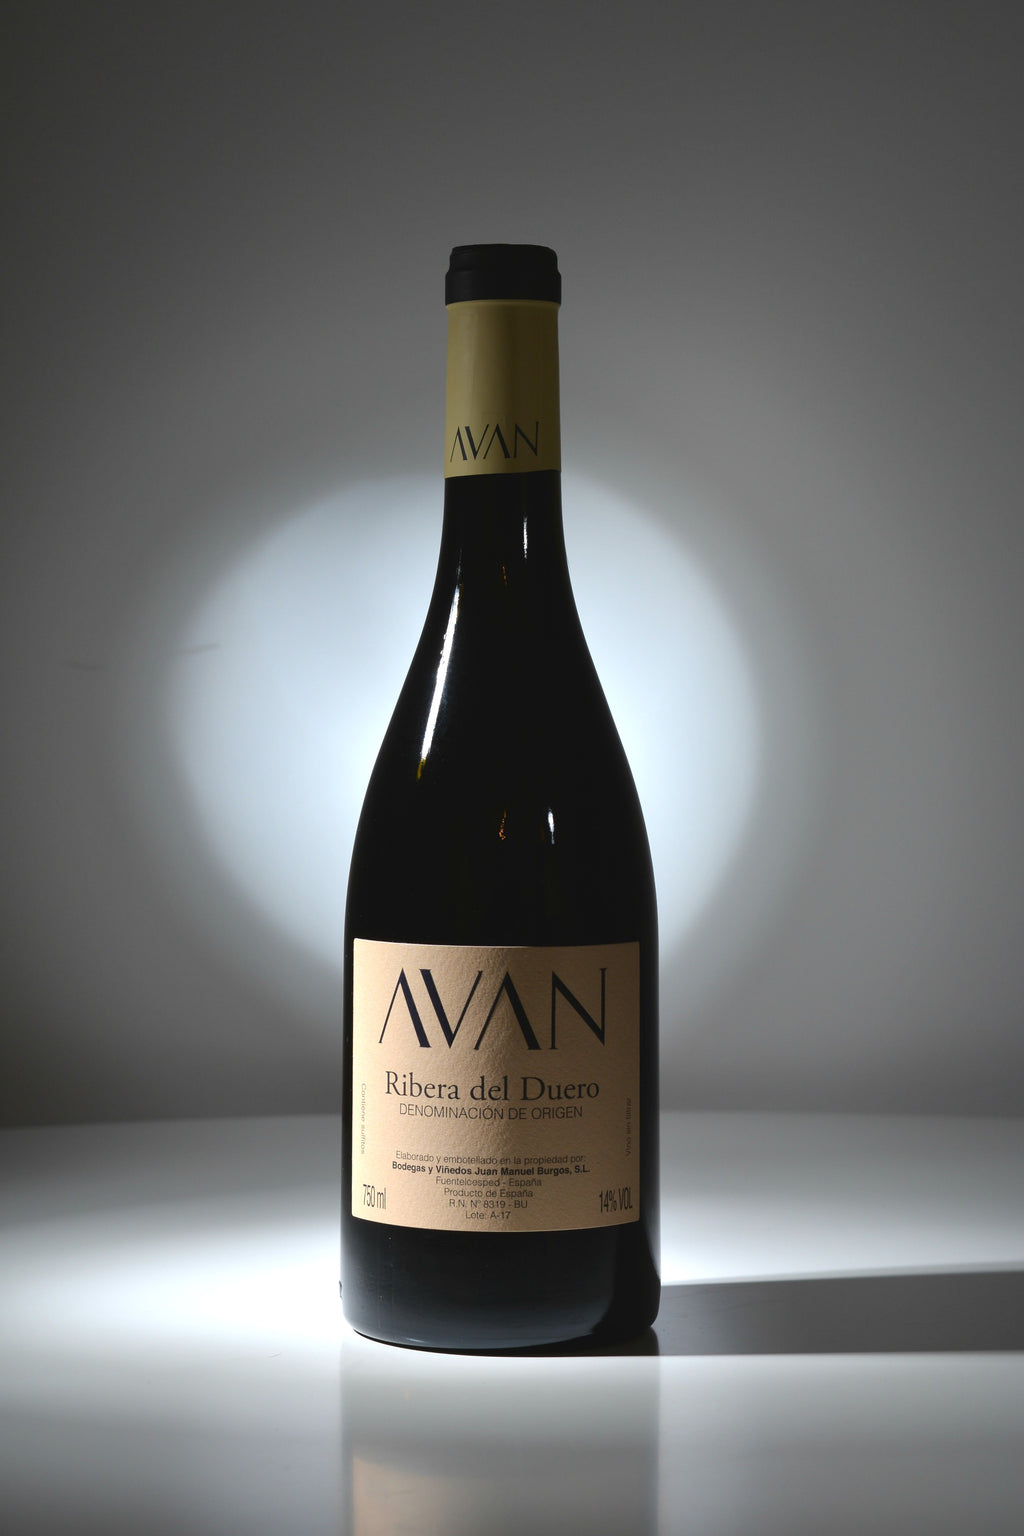 Avan 2016 - The Royal Bottle